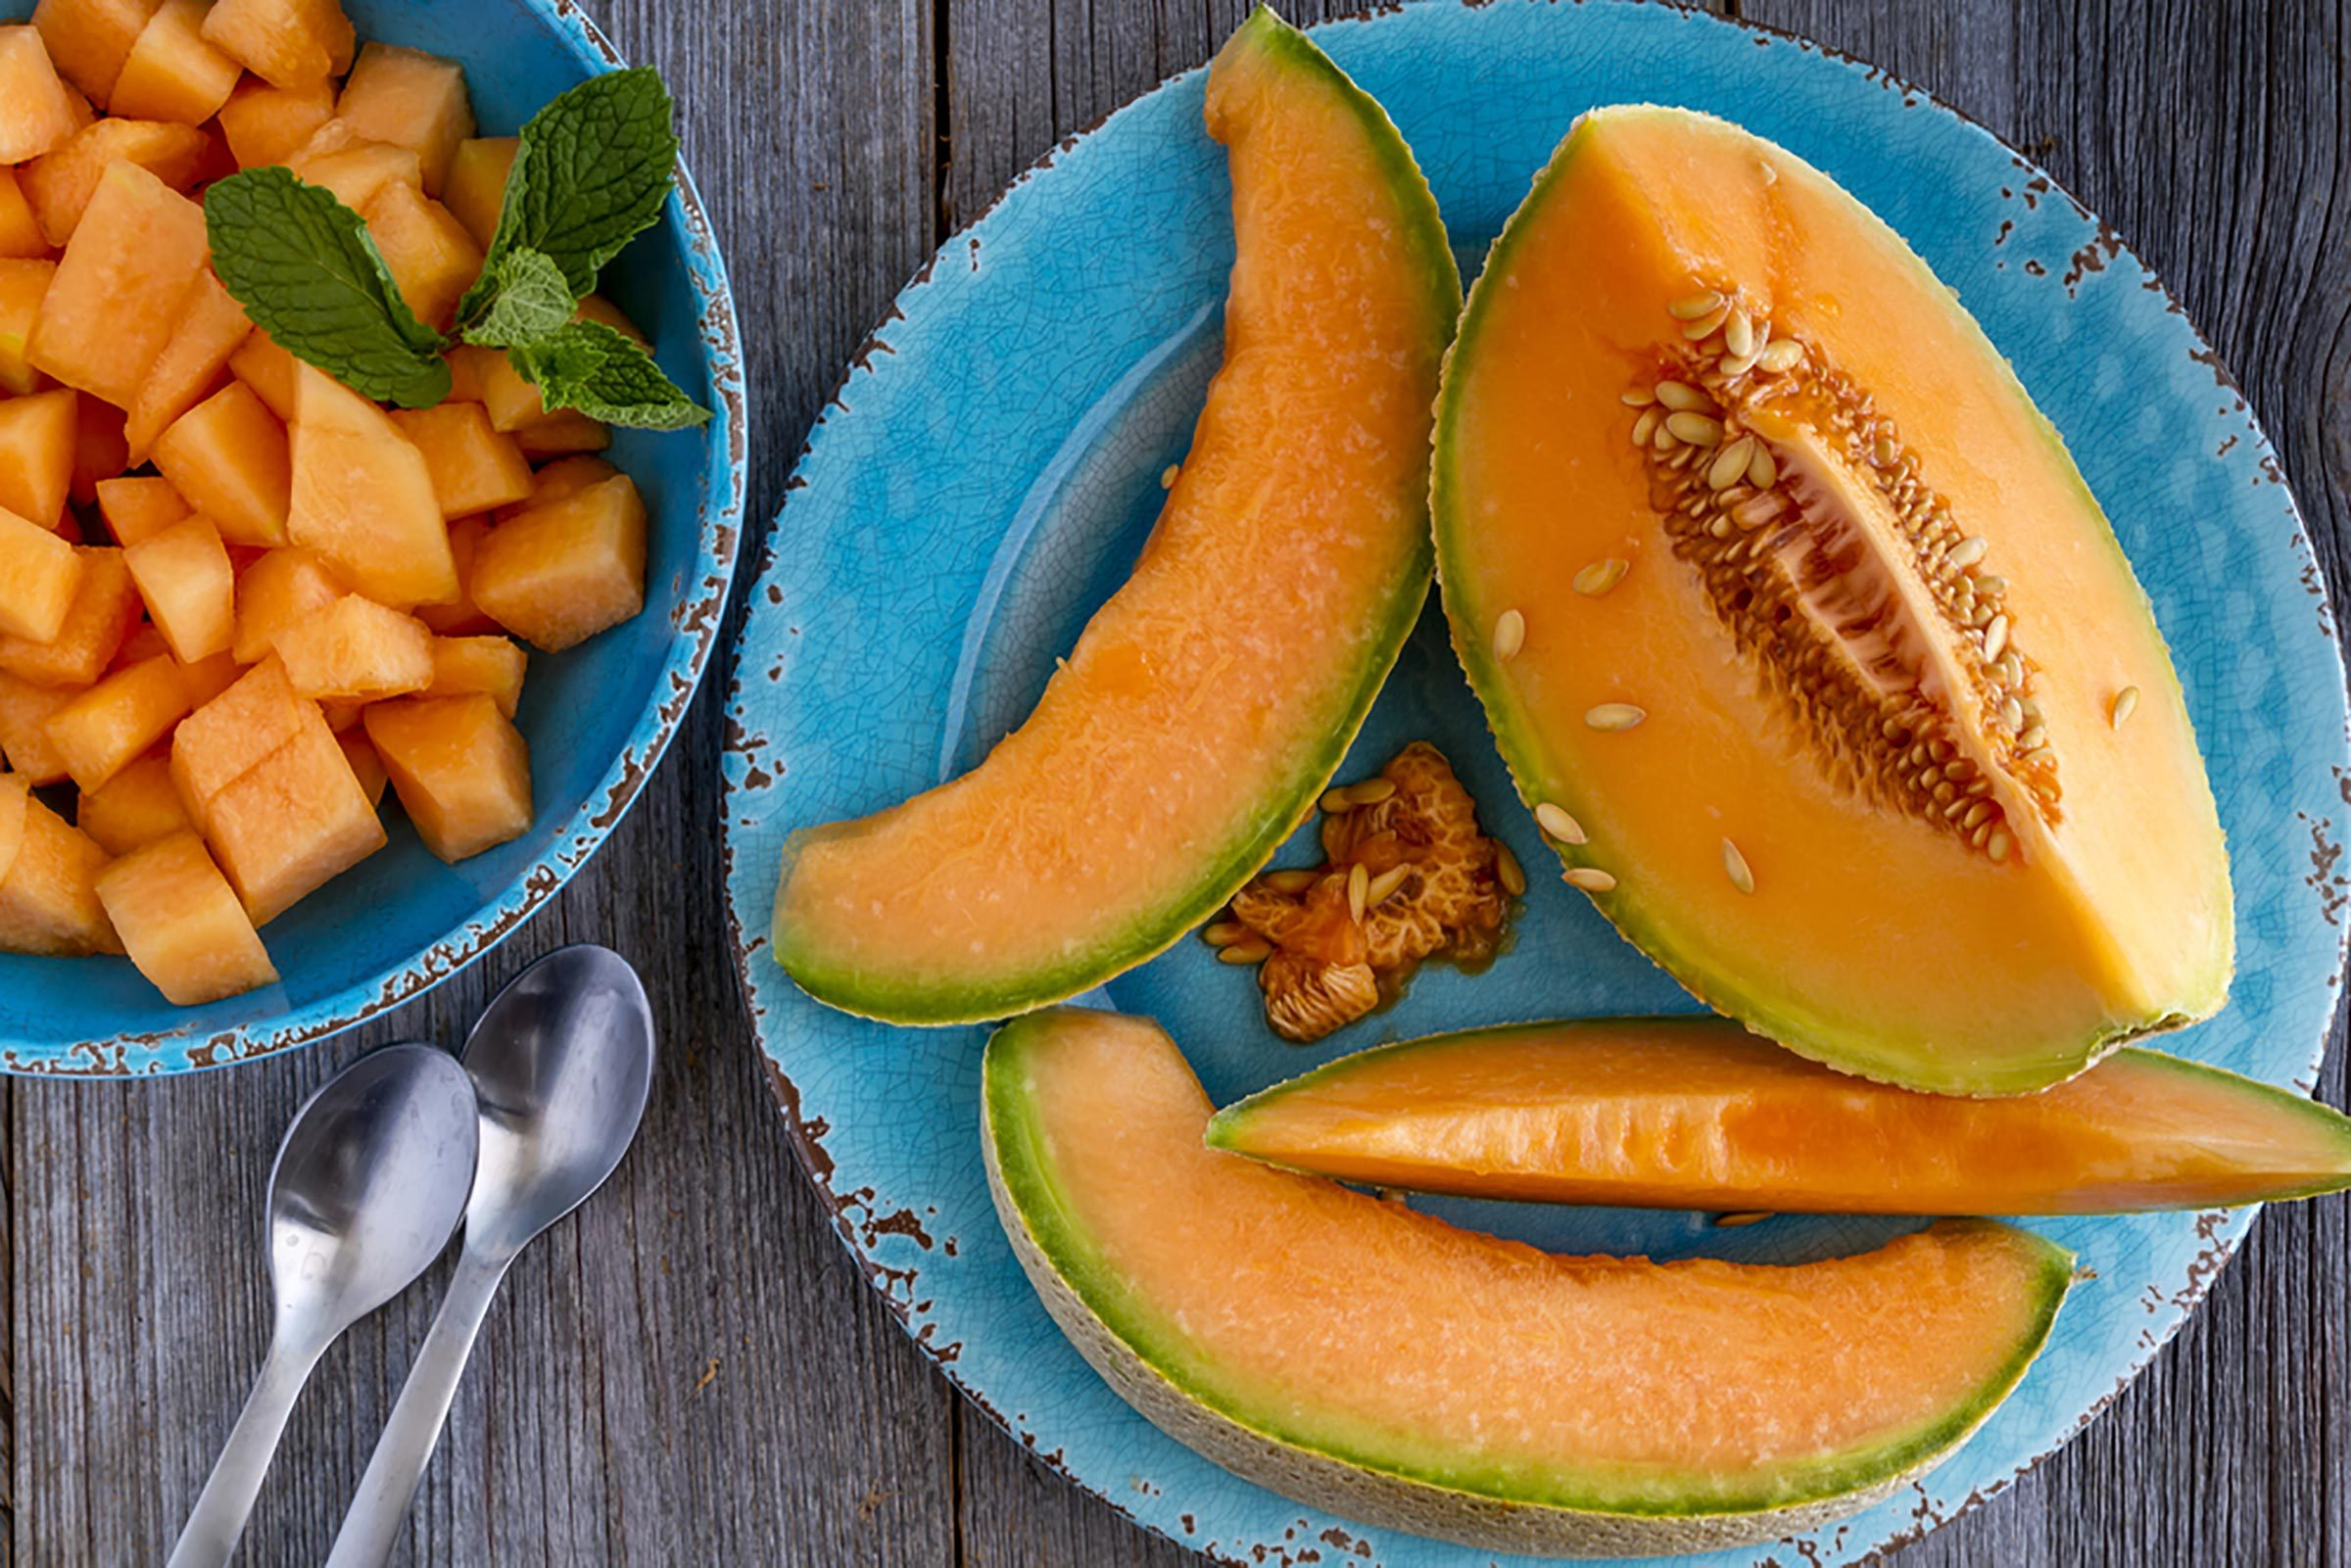 7 Health Benefits of Cantaloupe You Didn't Know About (and a Word of Caution)